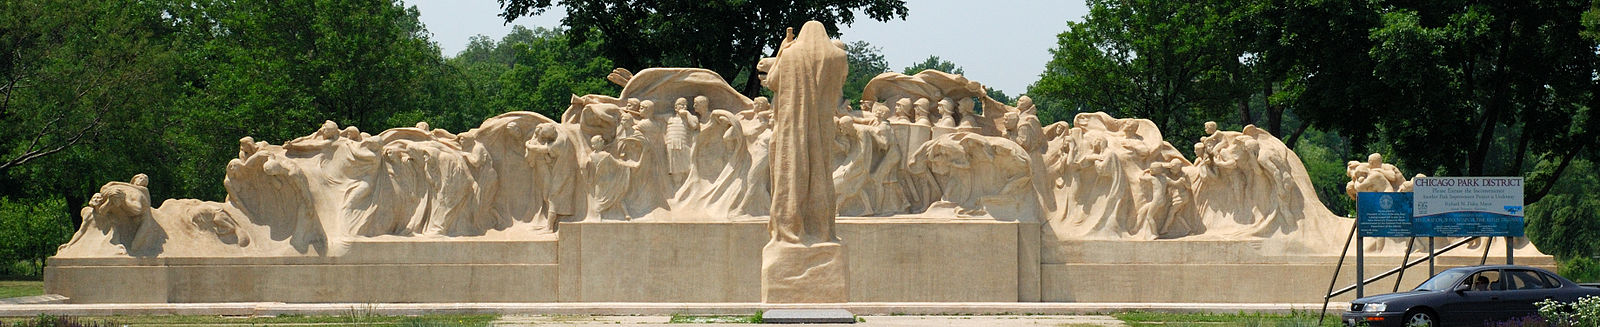 Fountain of Time (1910-22), Midway Plaisance, Chicago, Illinois. Panorama of the Fountain of Time.JPG